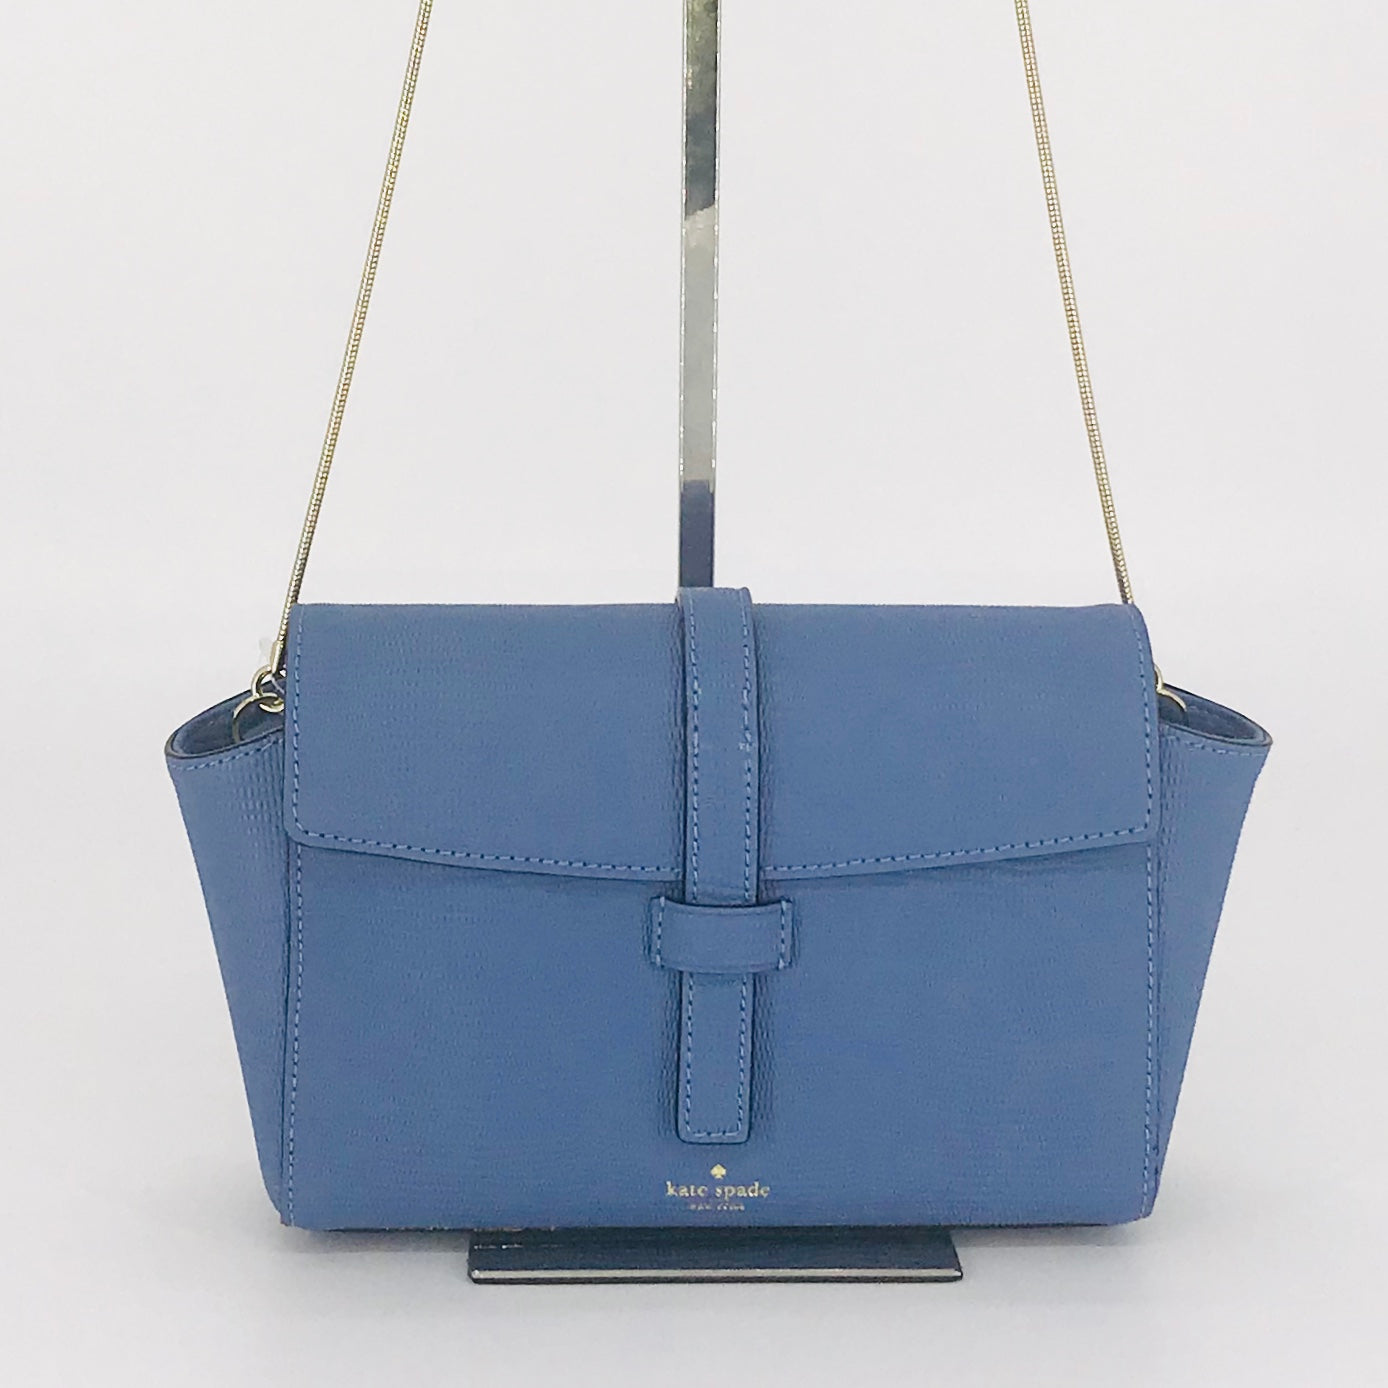 Emmie Riverside Street Crossbody Bag